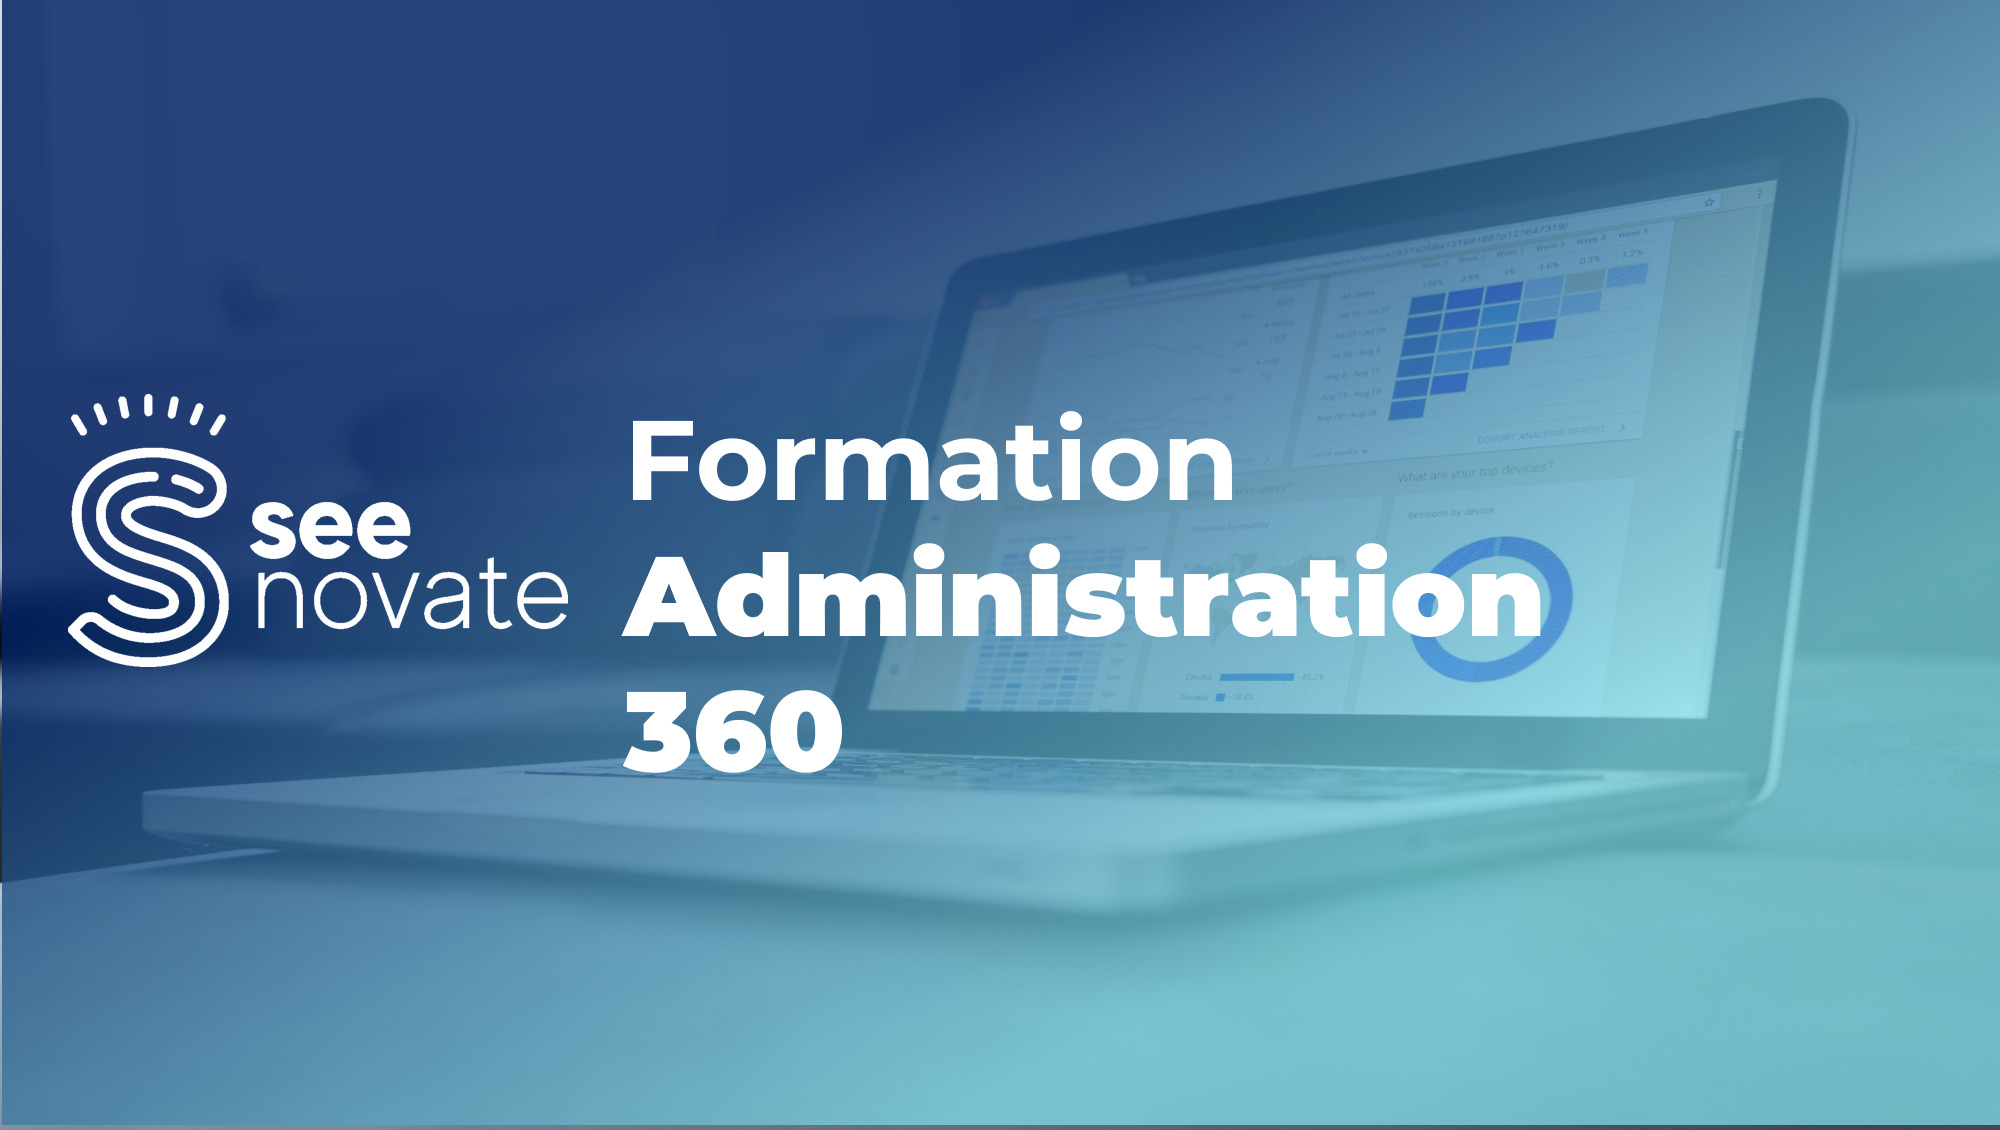 Formation Administration 360